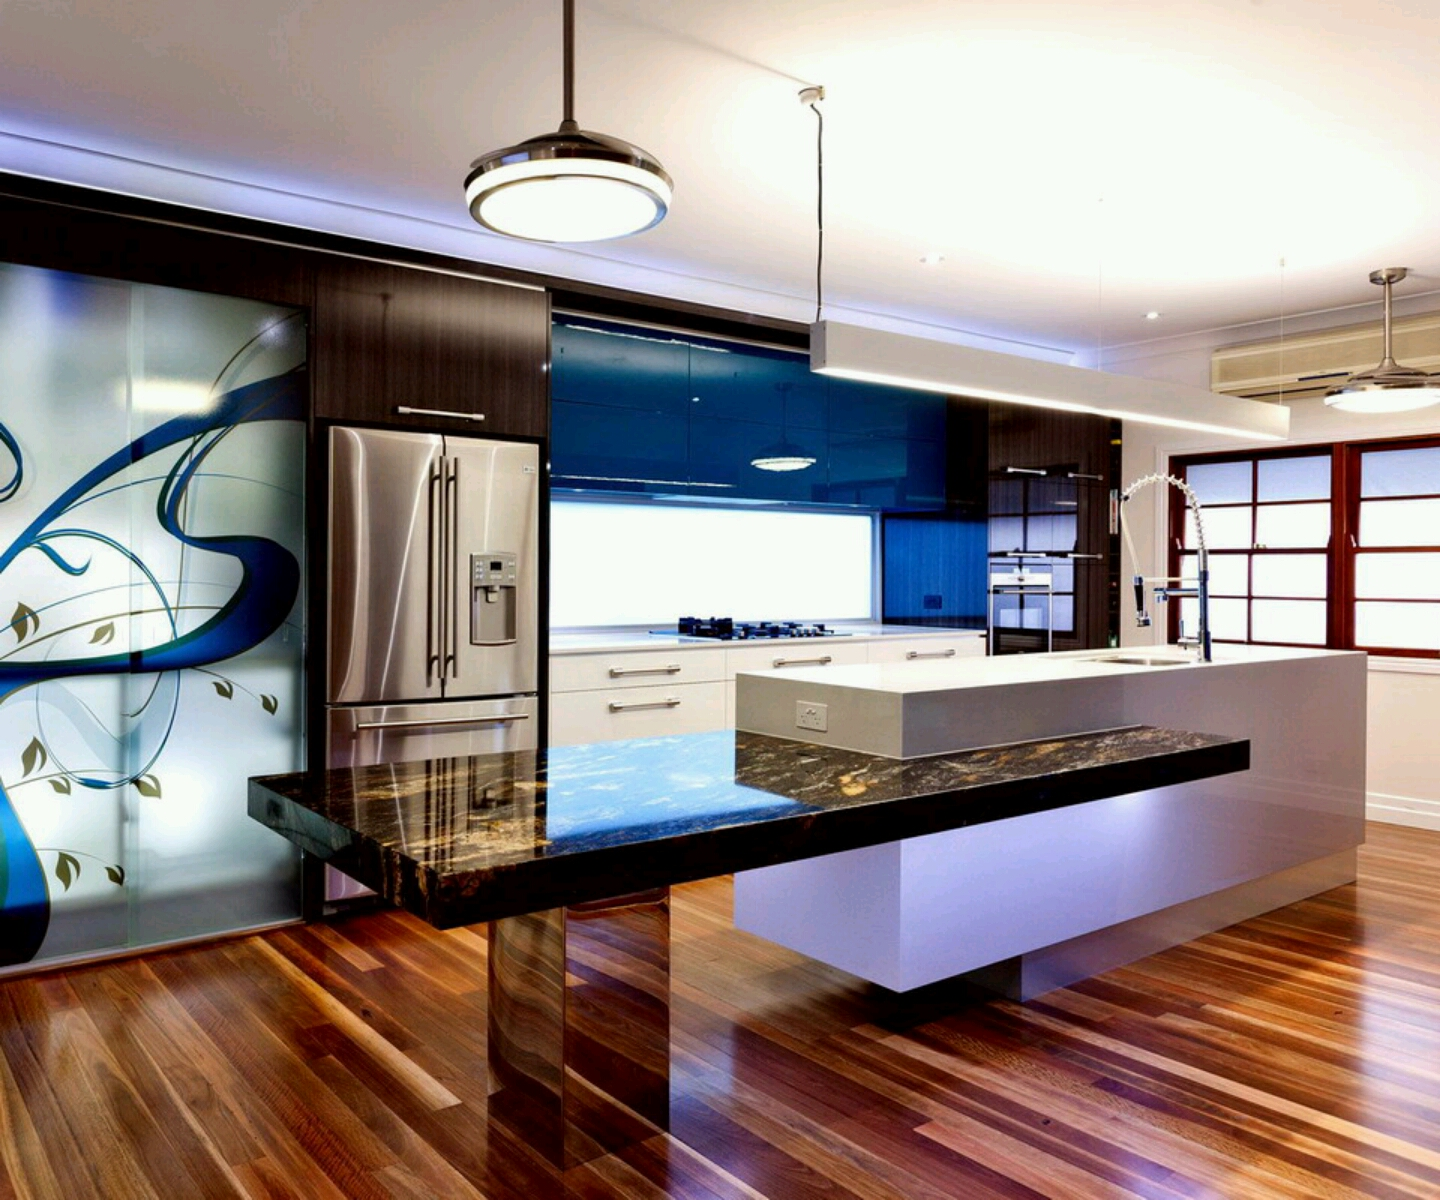 New home designs latest ultra modern kitchen designs ideas for Modern interior designs 2016